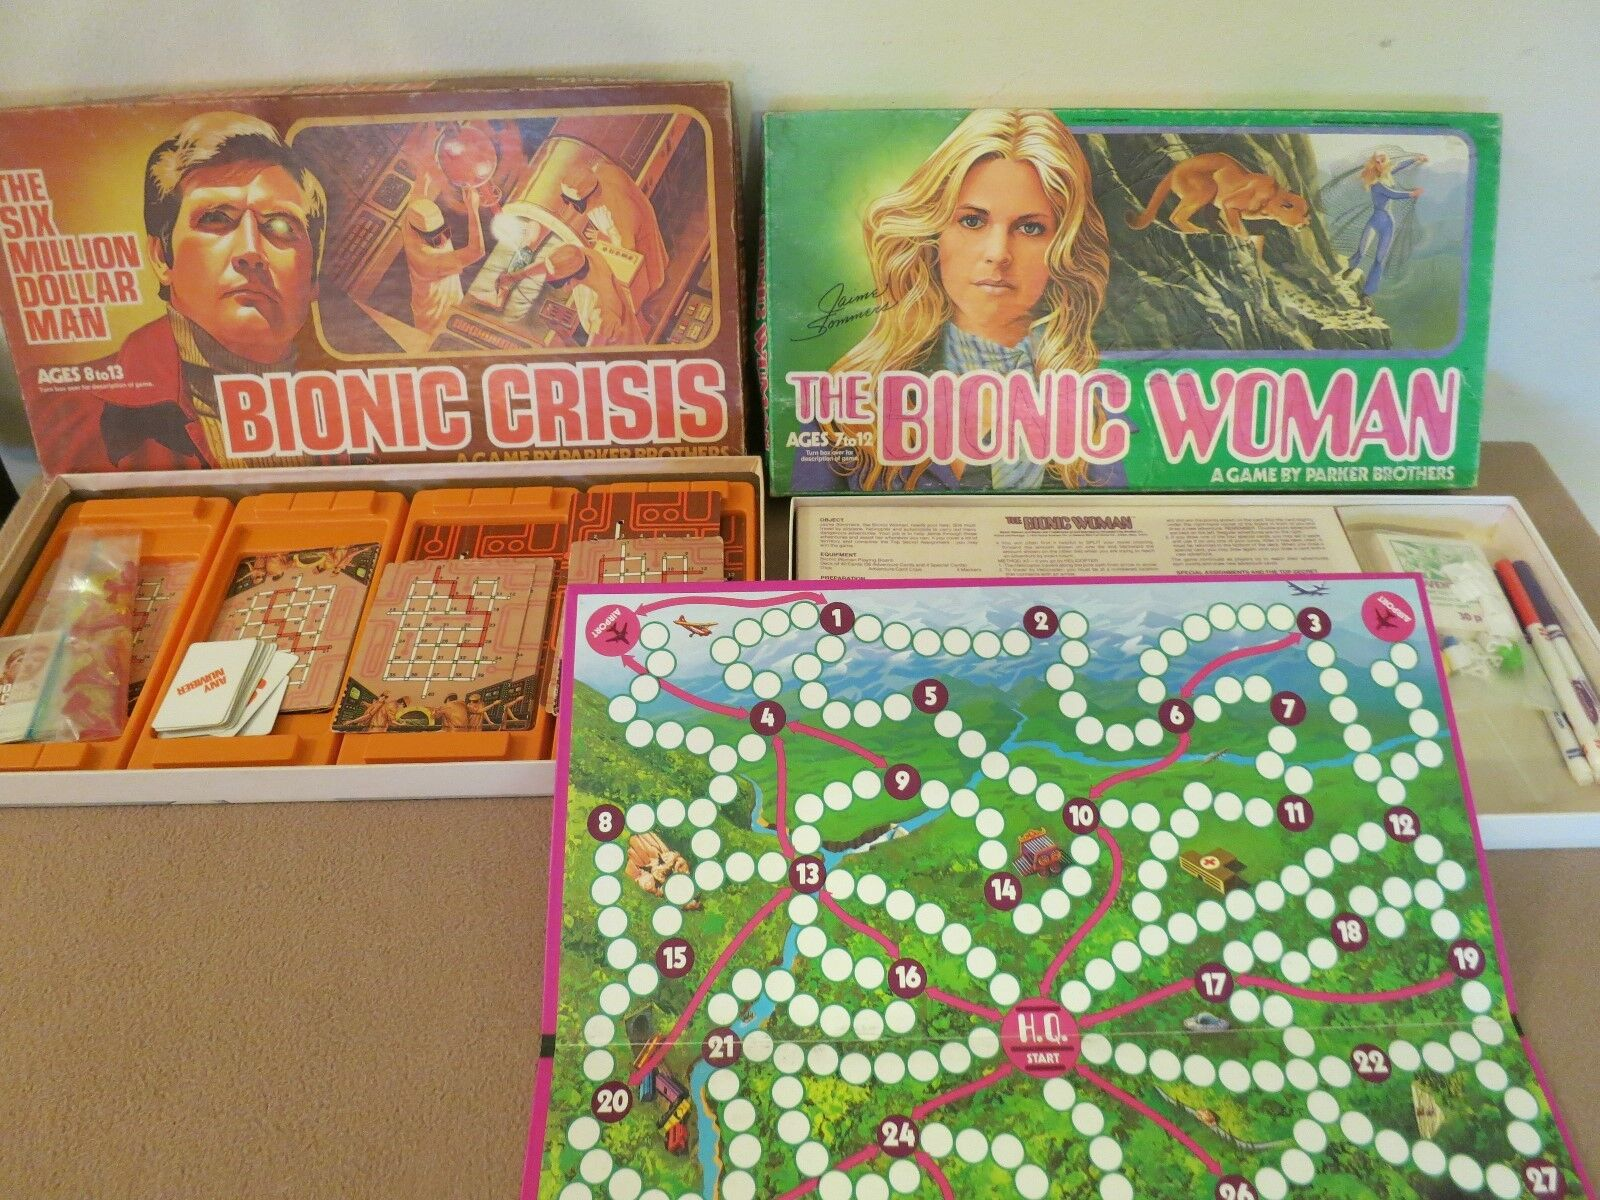 (2) 1975 & 76 VINTAGE   BIONIC MAN & BIONIC WOMAN   BOARD GAMES ORIGINALS PARKER